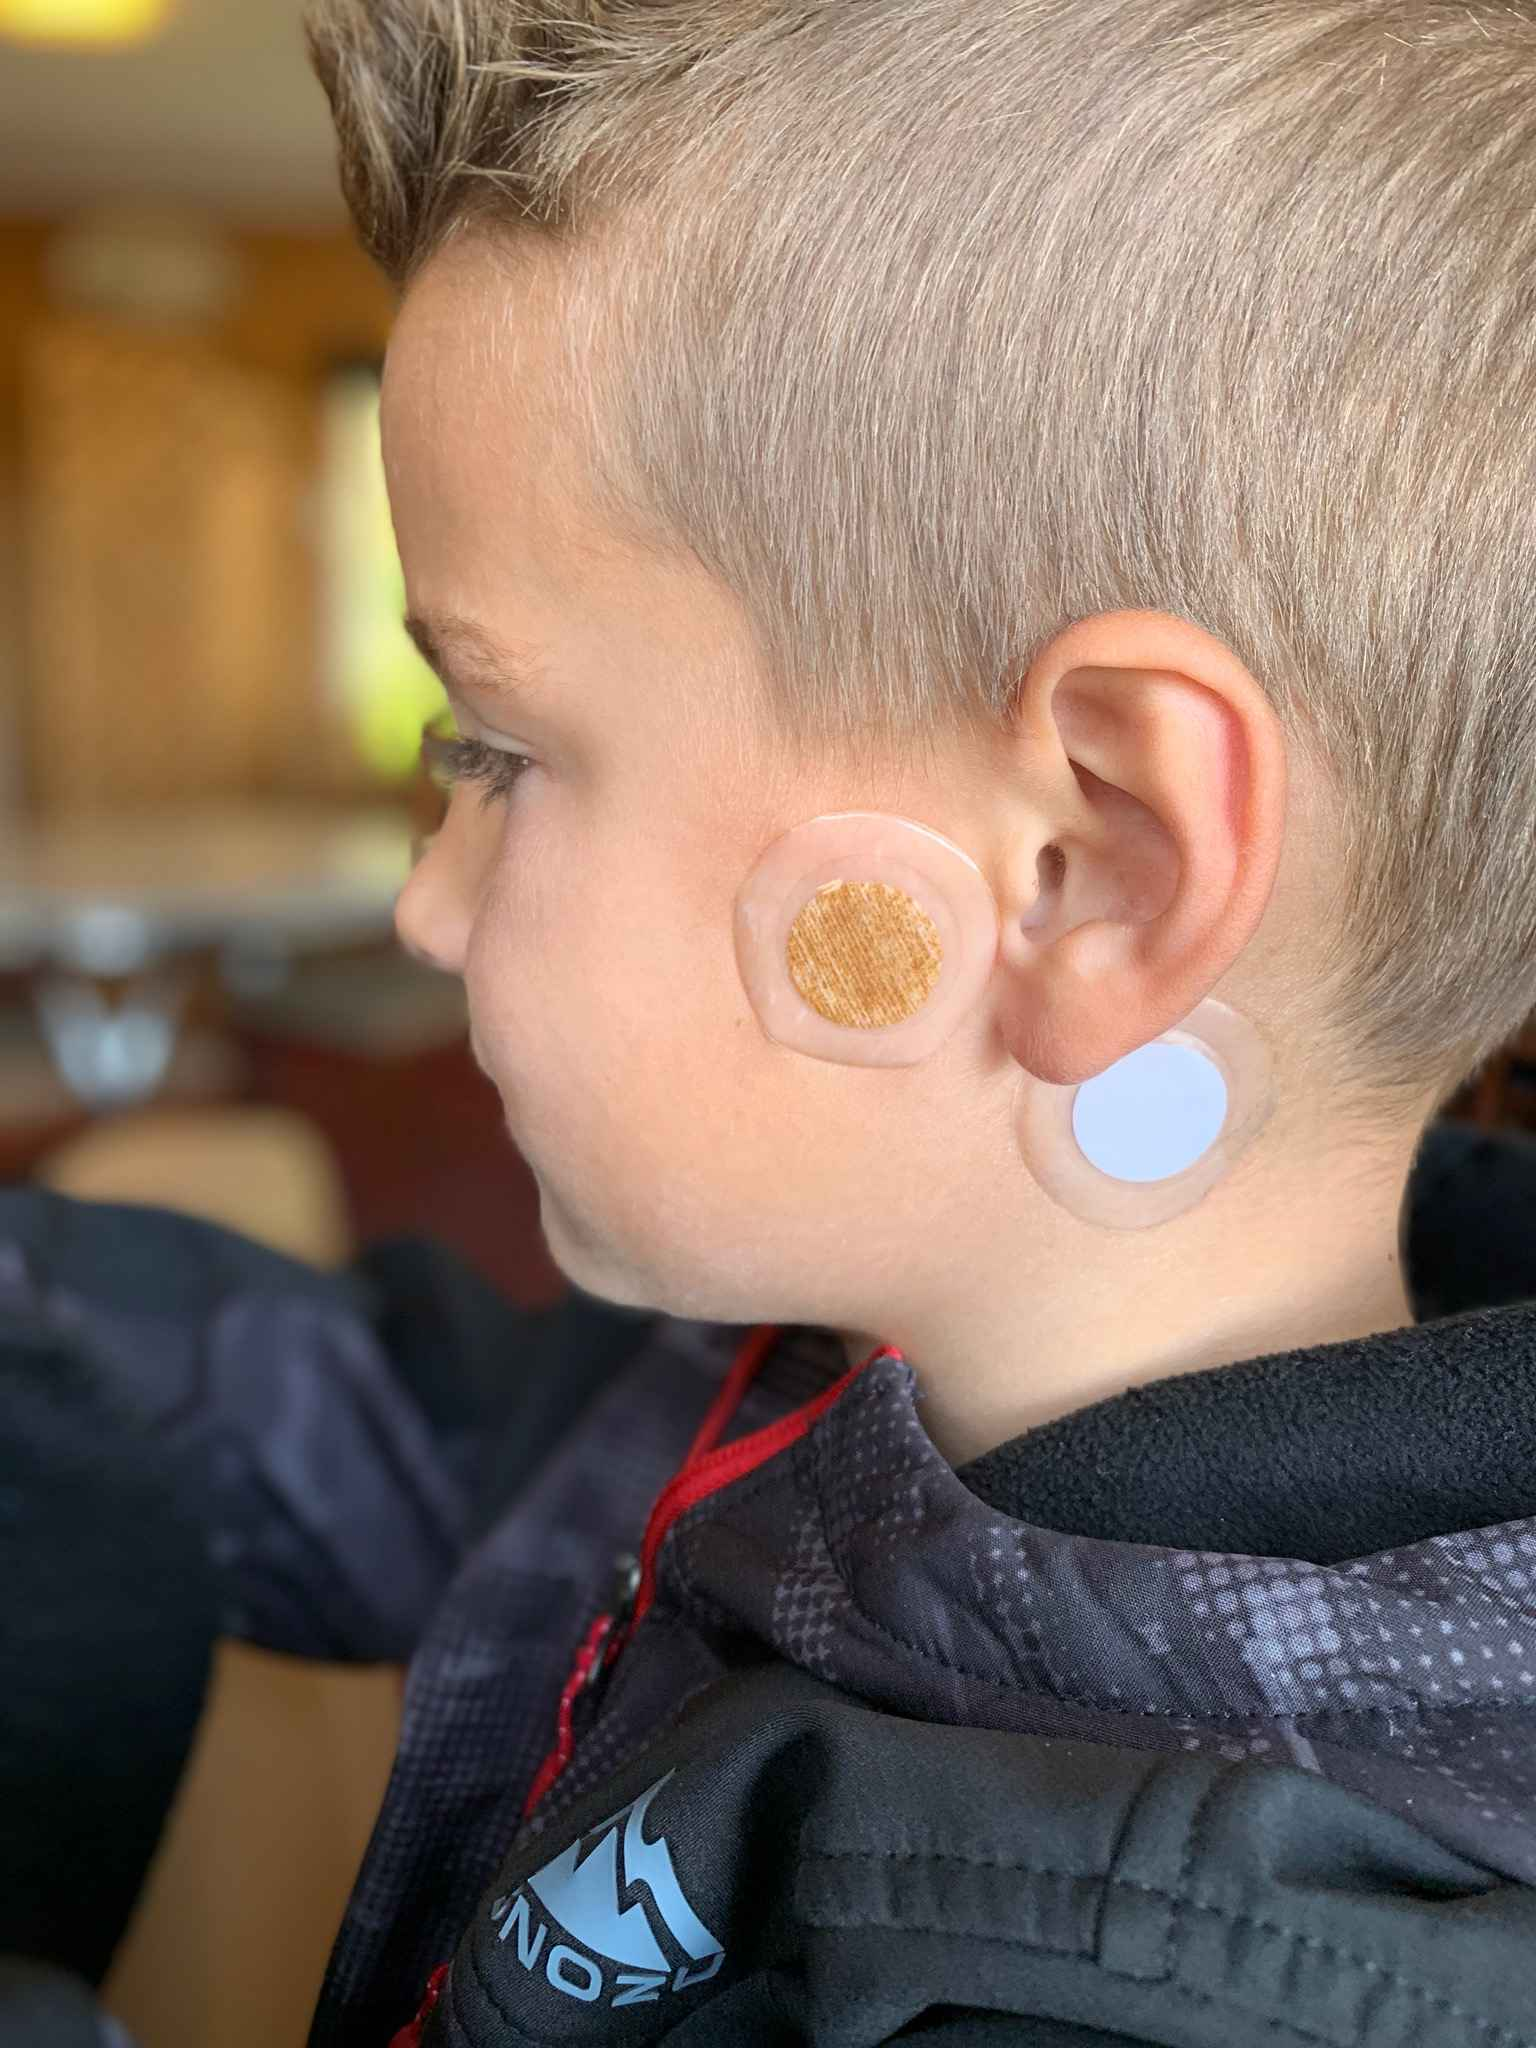 Earaches and Ear Infection Home Remedies that Work Even When Antibiotics  Don't - Robin Ray Green - Healing Kids in the Unwellness Gap™ with Chinese  Medicine